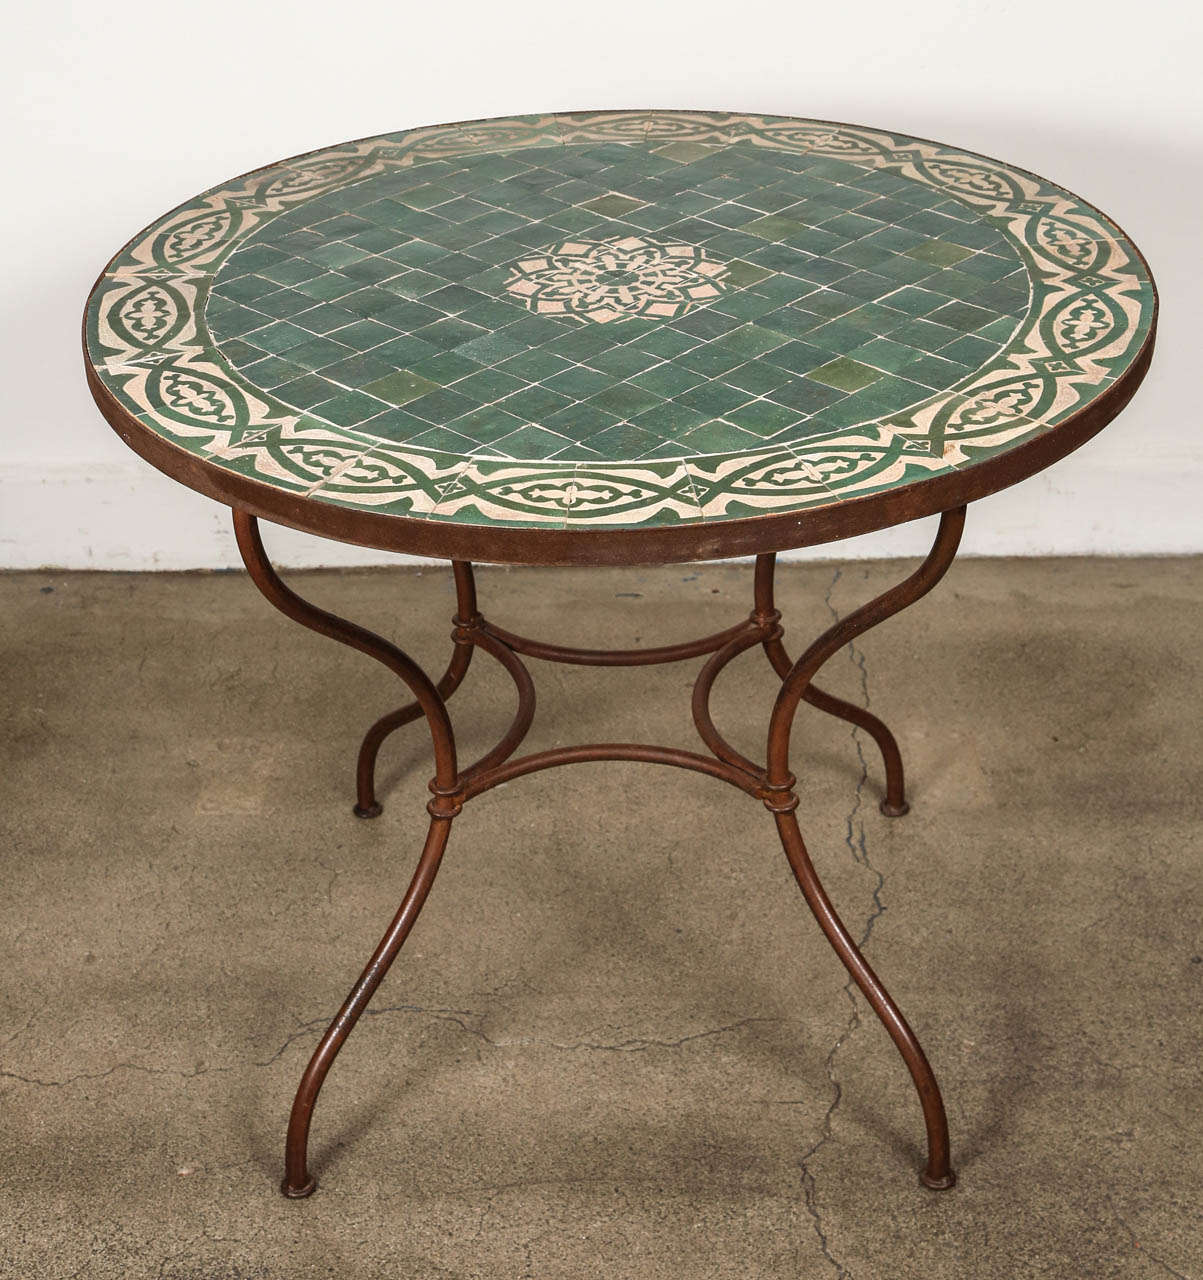 Moroccan Mosaic Tile Table Top at 1stdibs